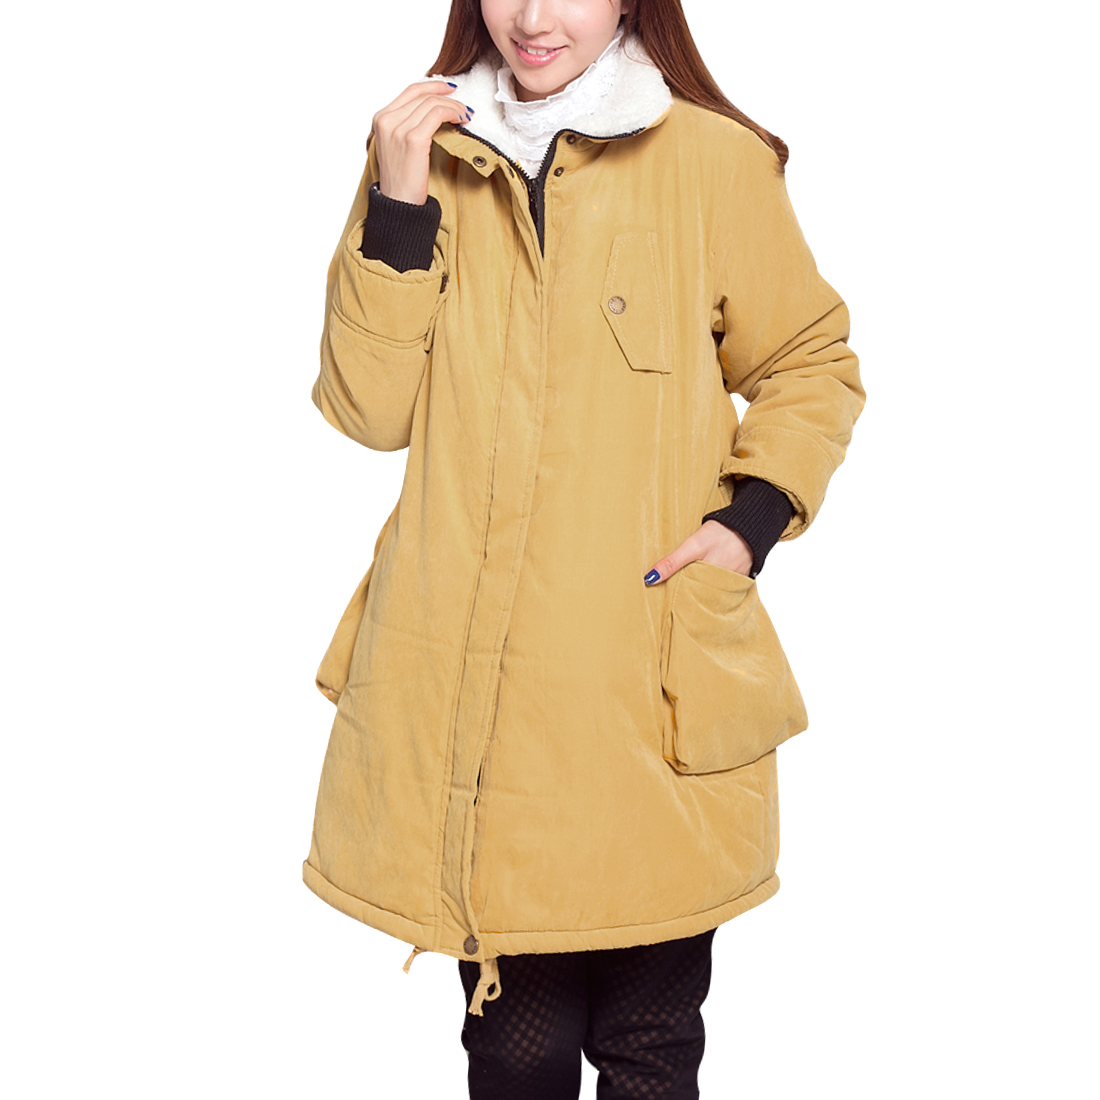 Maternity Chic Yellow Lamb Wool Warm Thick Long Sleeves Coat M